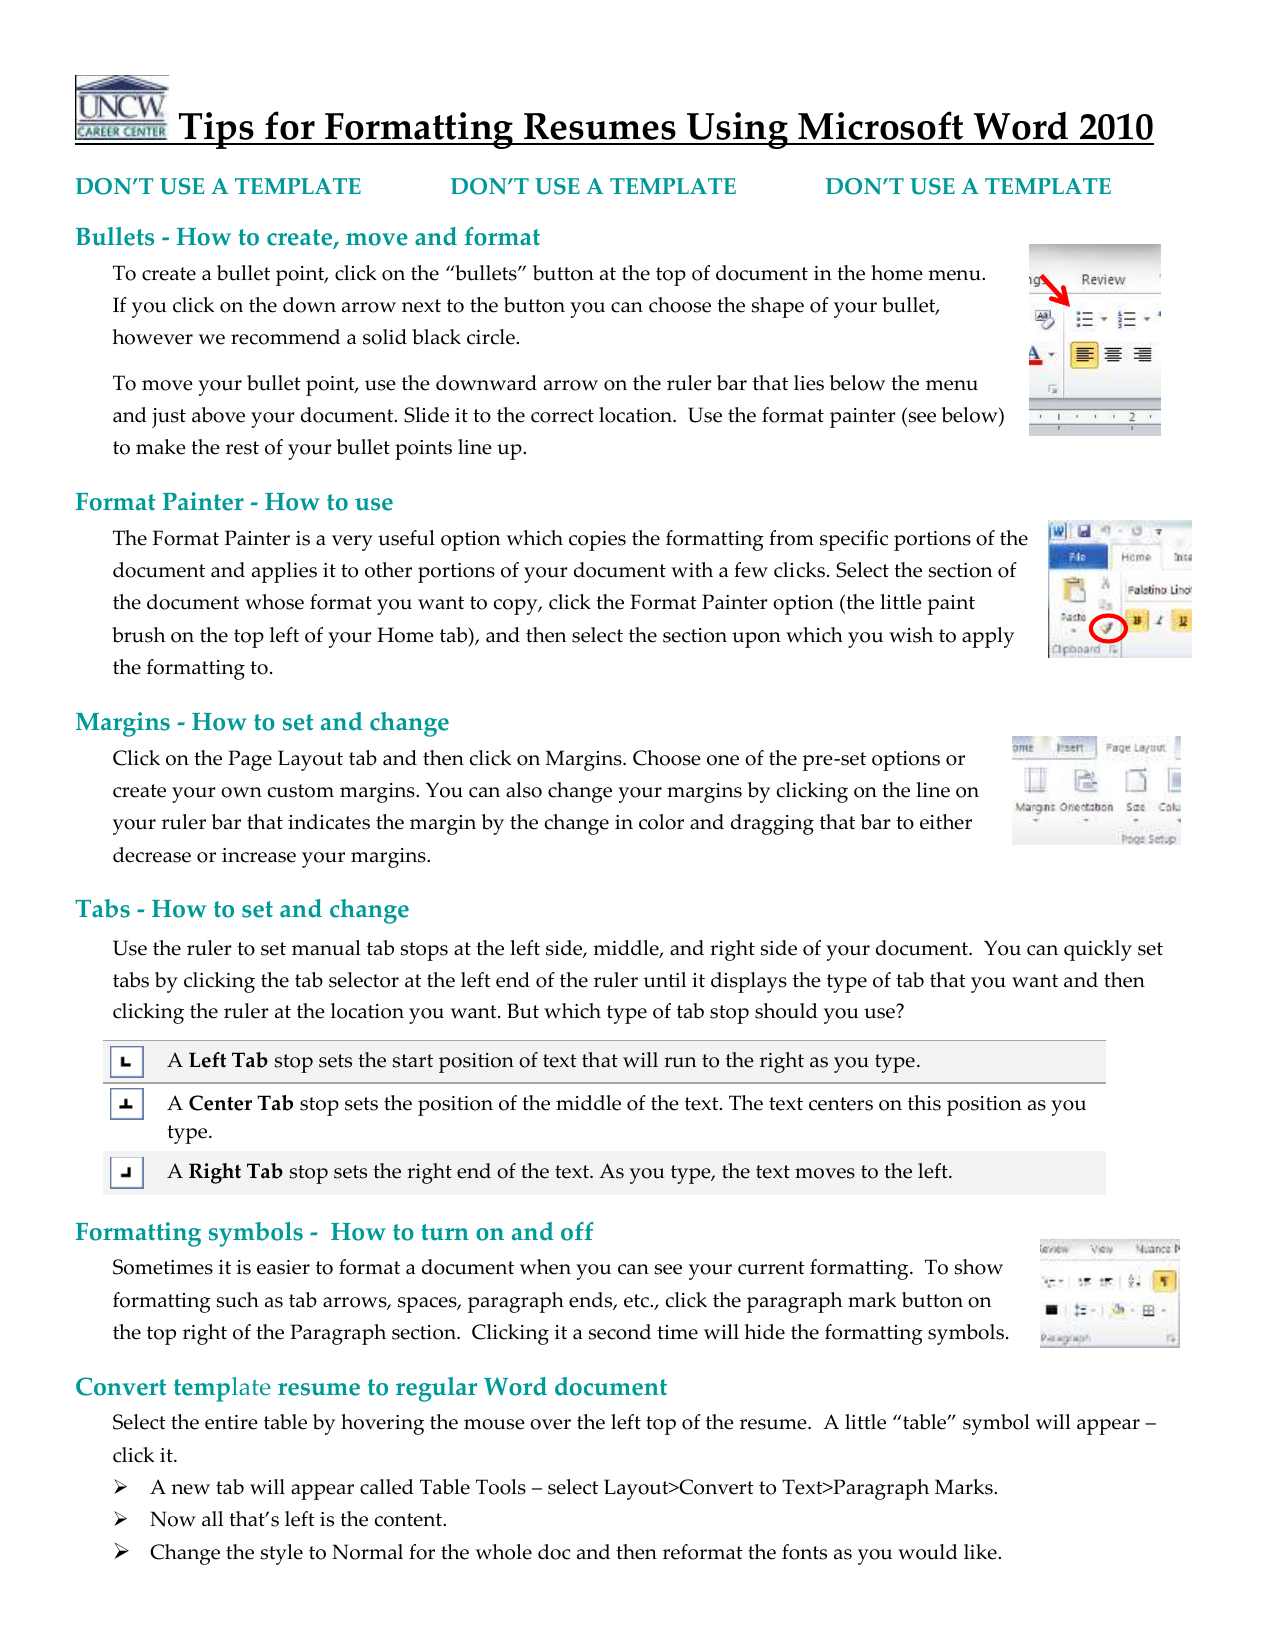 Tips For Formatting Resumes Using Microsoft Word 2010